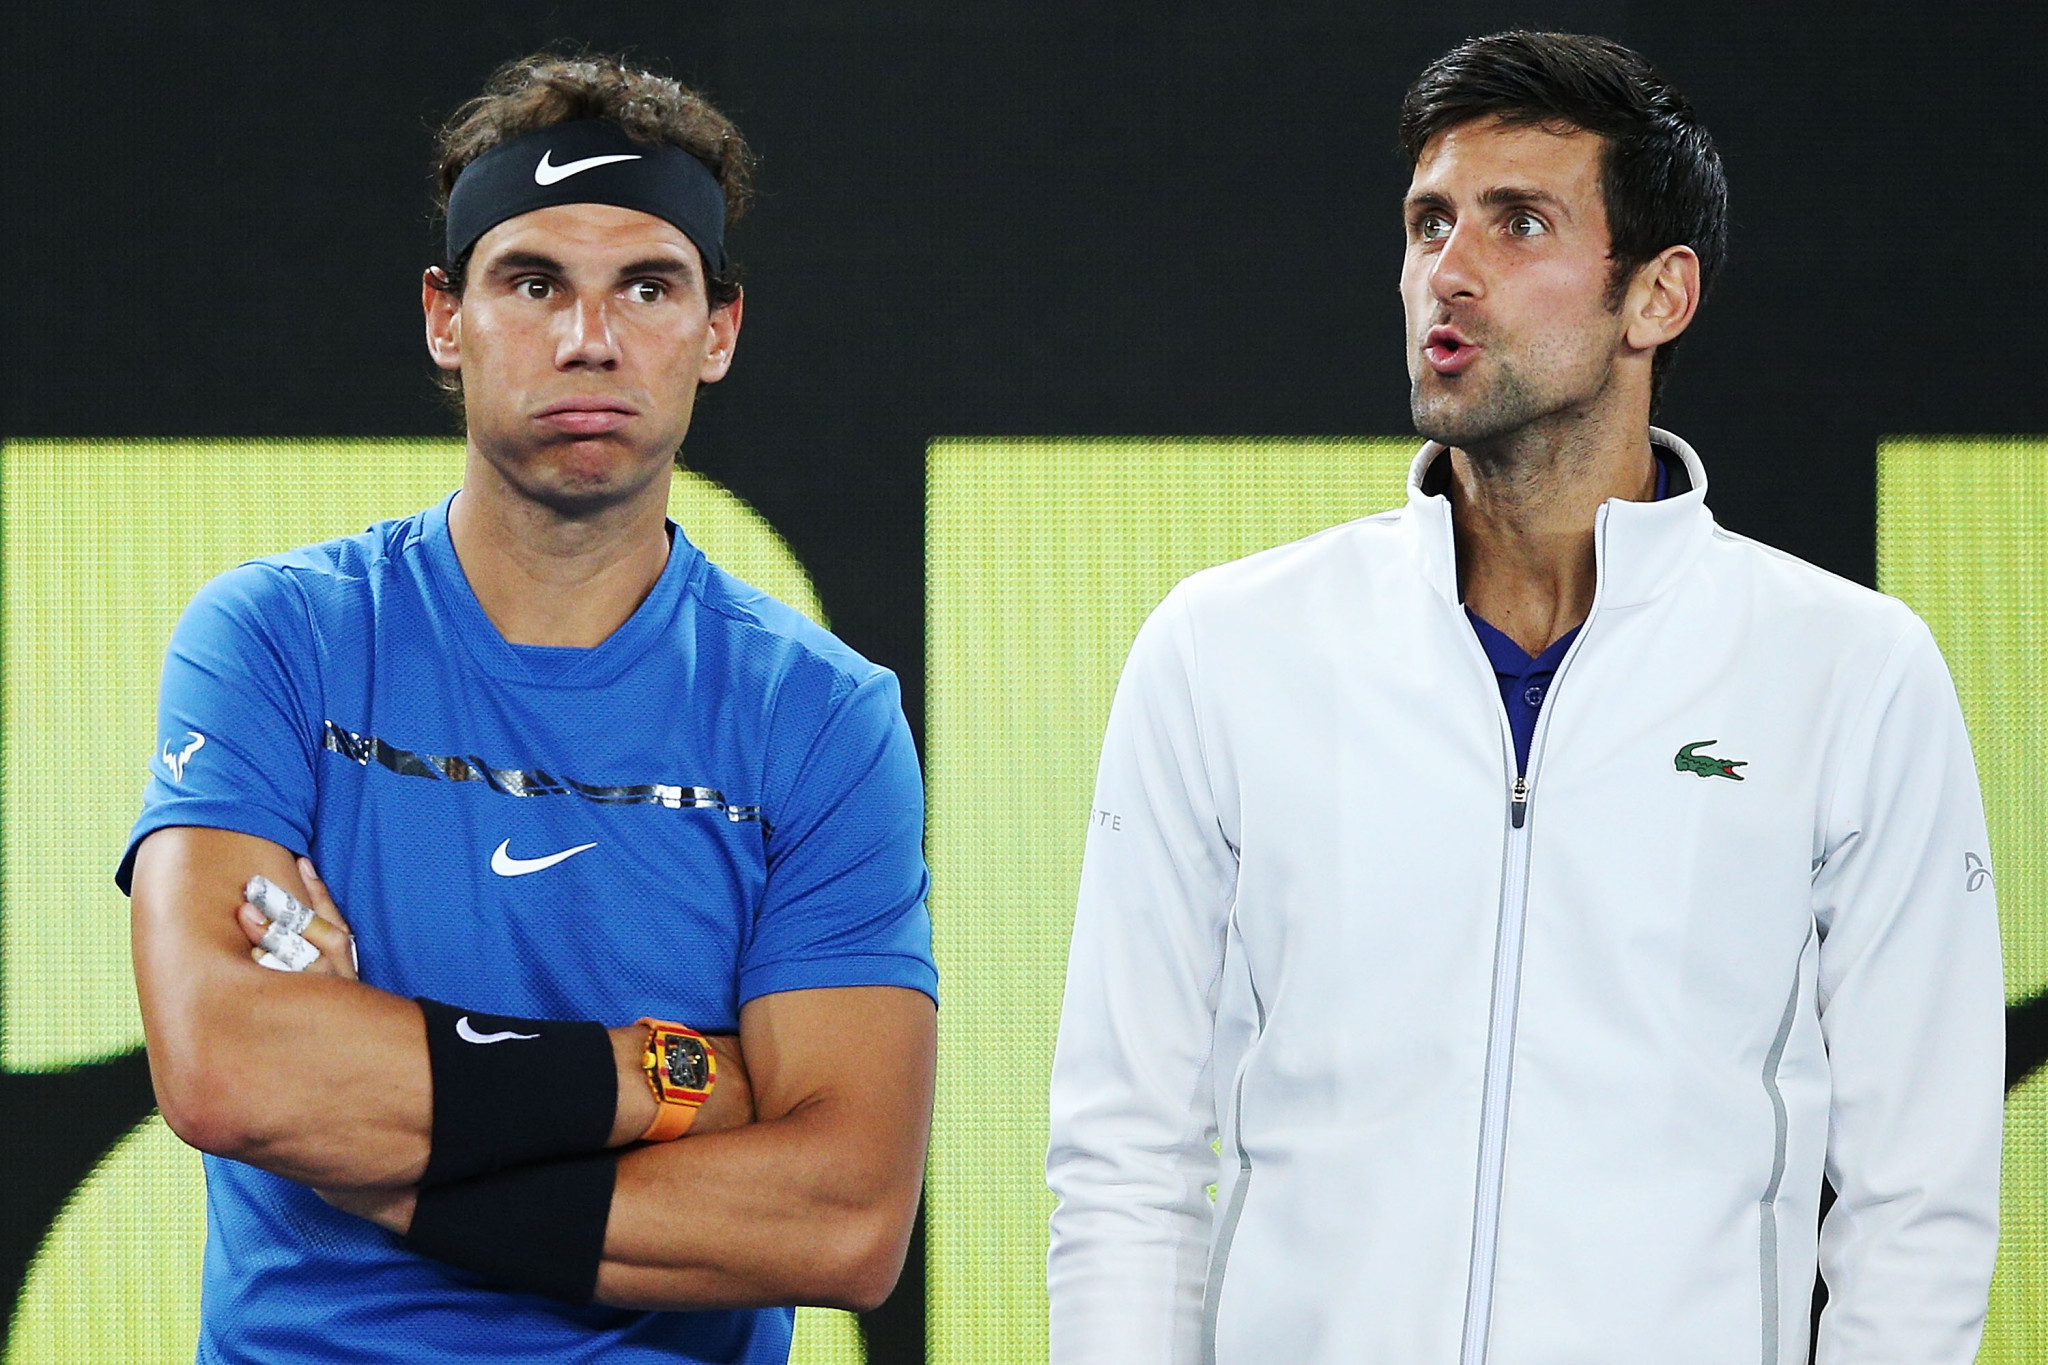 Novak Djokovic, right, doesn't make Bercow's top 10, while Rafael Nadal is number two ©Getty Images